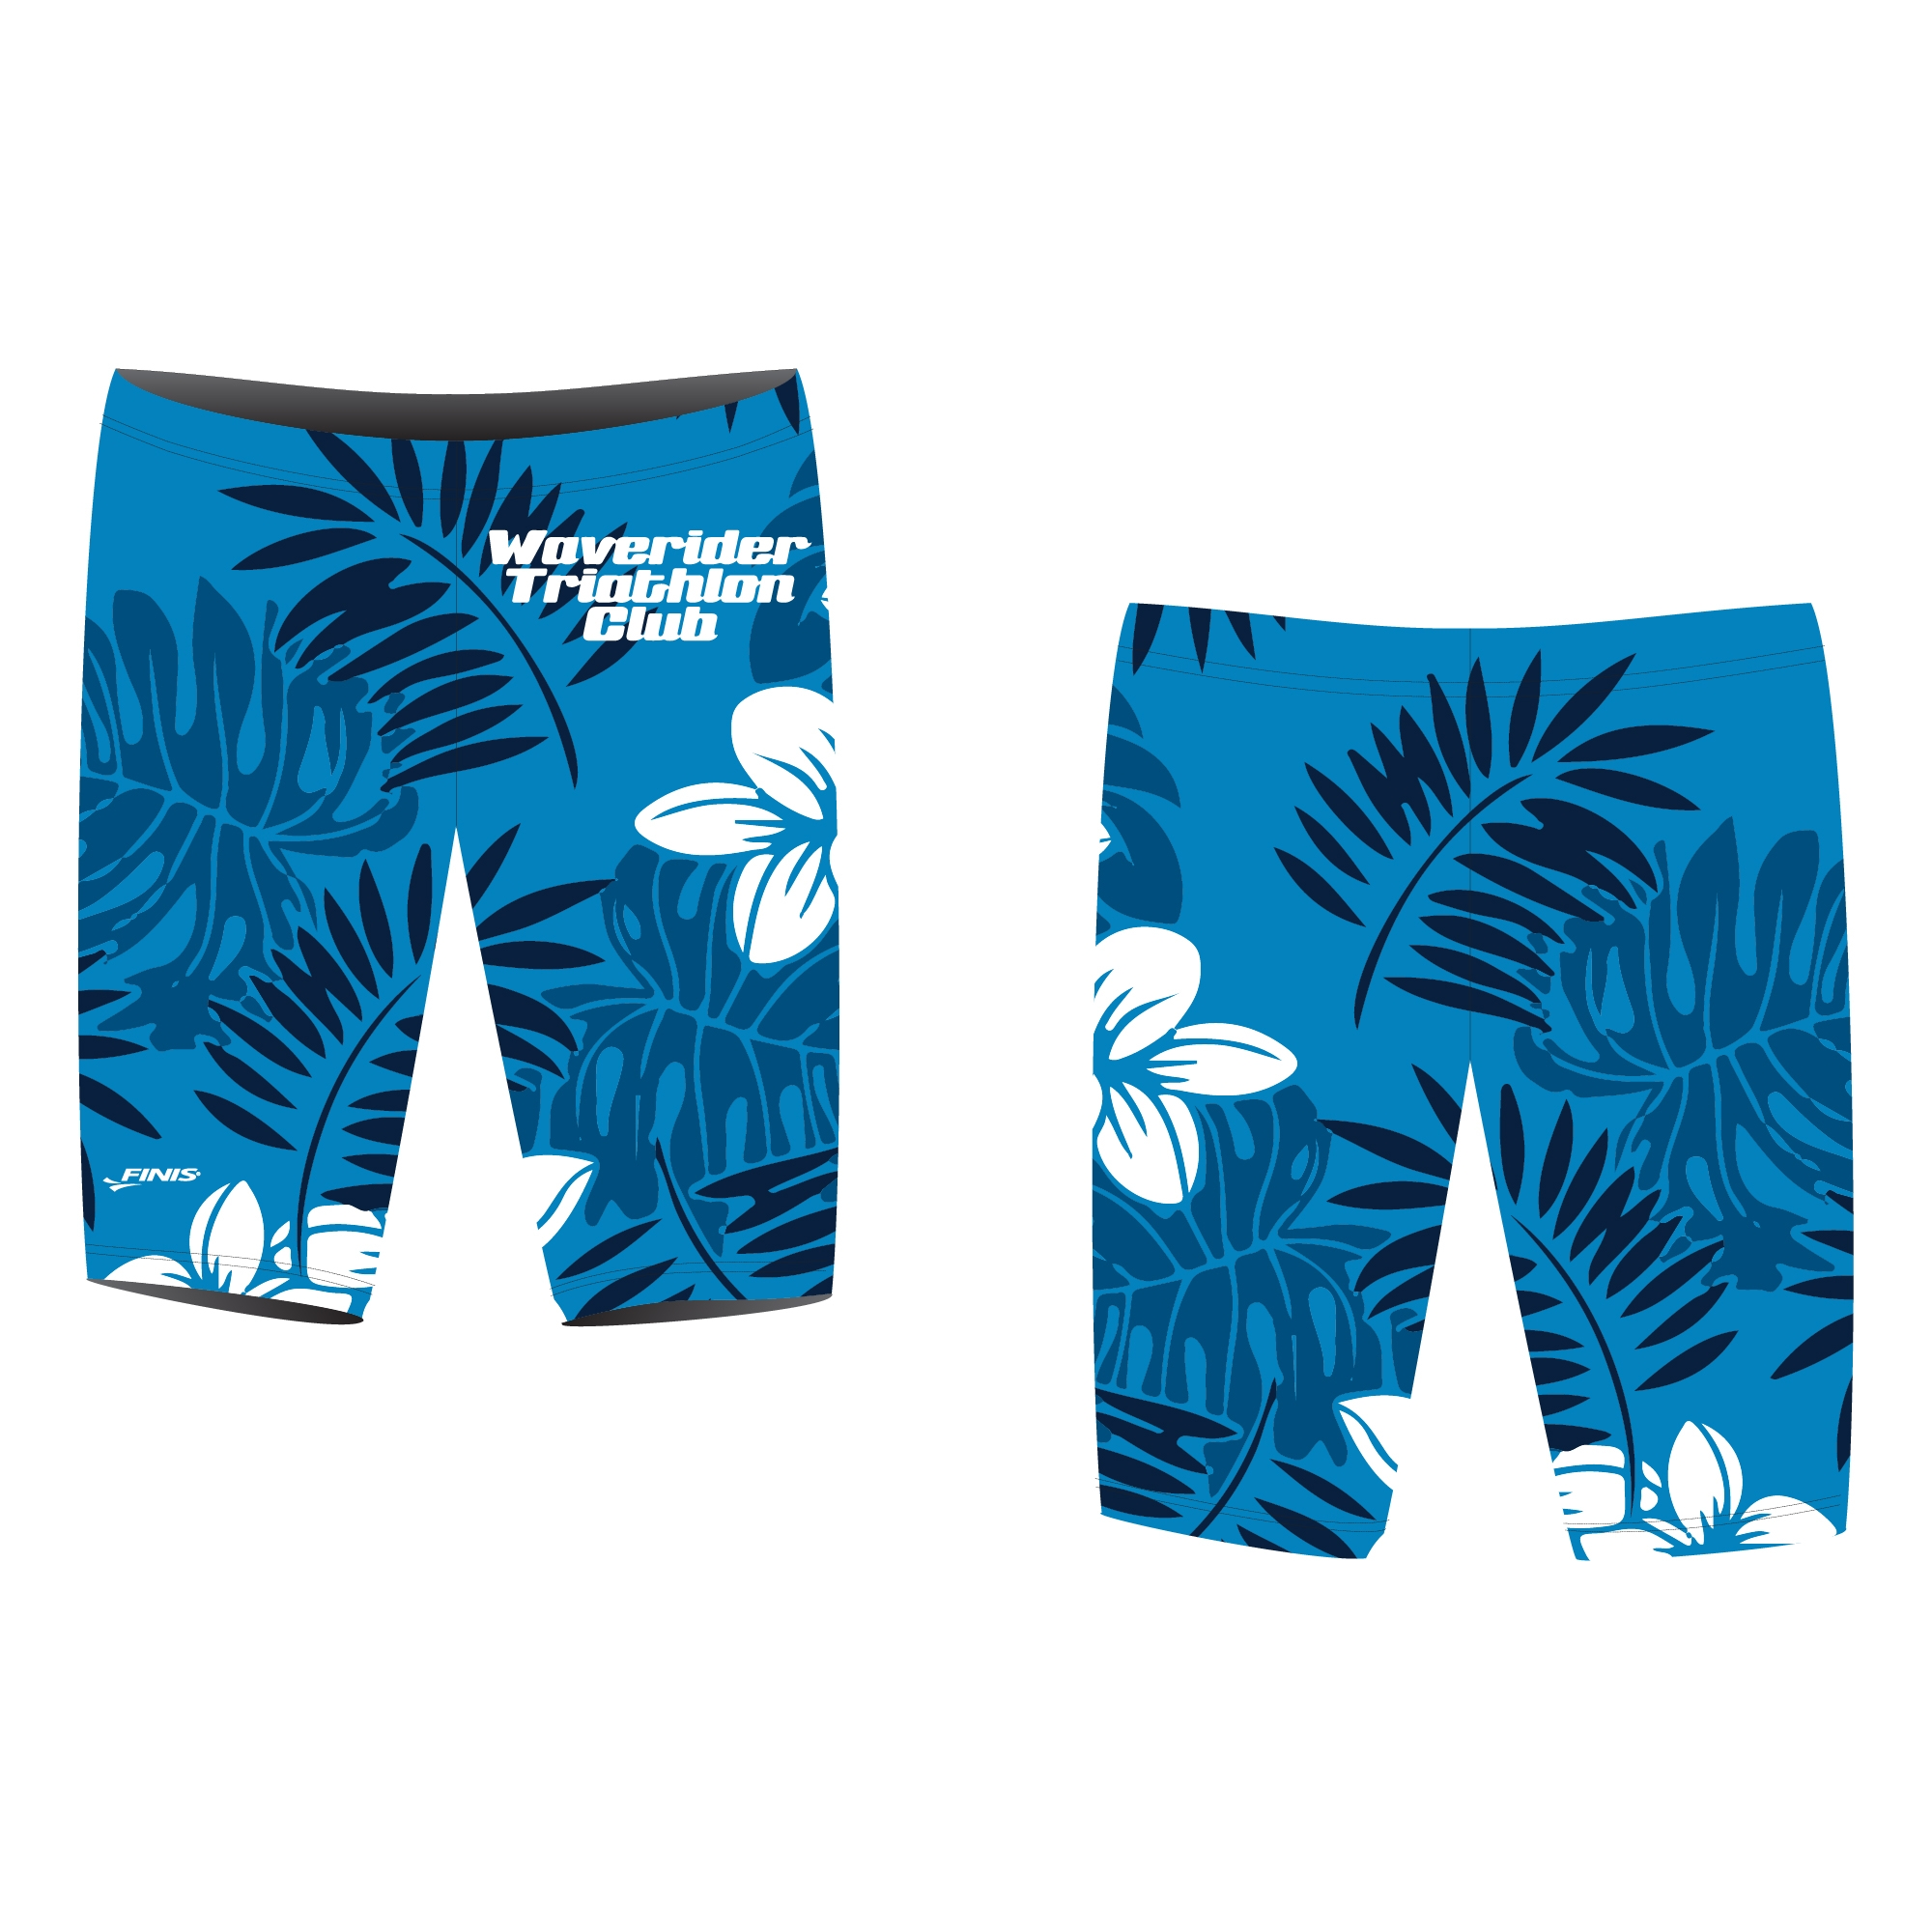 Waverider Triathlon Club custom finis jammer swimsuit proof with hawaian ferns and flowers on it